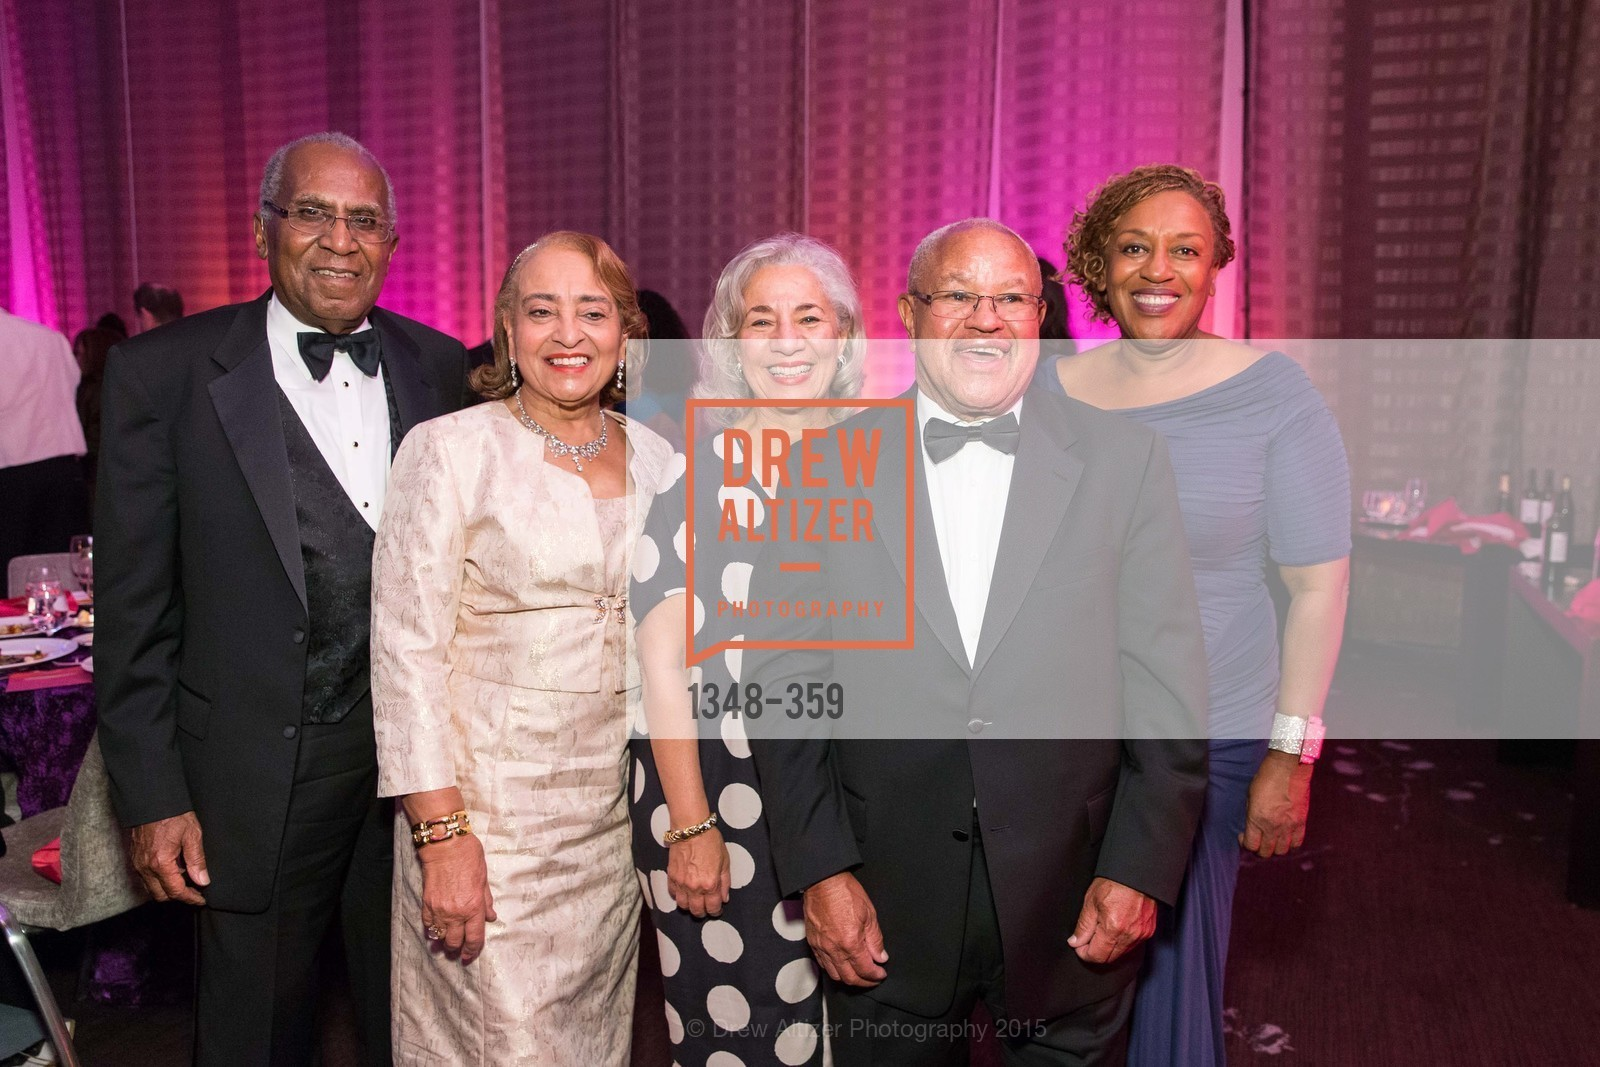 Lowell James Gibbs, Jewelle Taylor Gibbs, Peggy Woodford Forbes, CCH Pounder, Gregory Edwards, 2015 MoAD Gala: Finding the I in Diaspora, MoAD Museum & The St. Regis, October 10th, 2015,Drew Altizer, Drew Altizer Photography, full-service agency, private events, San Francisco photographer, photographer california